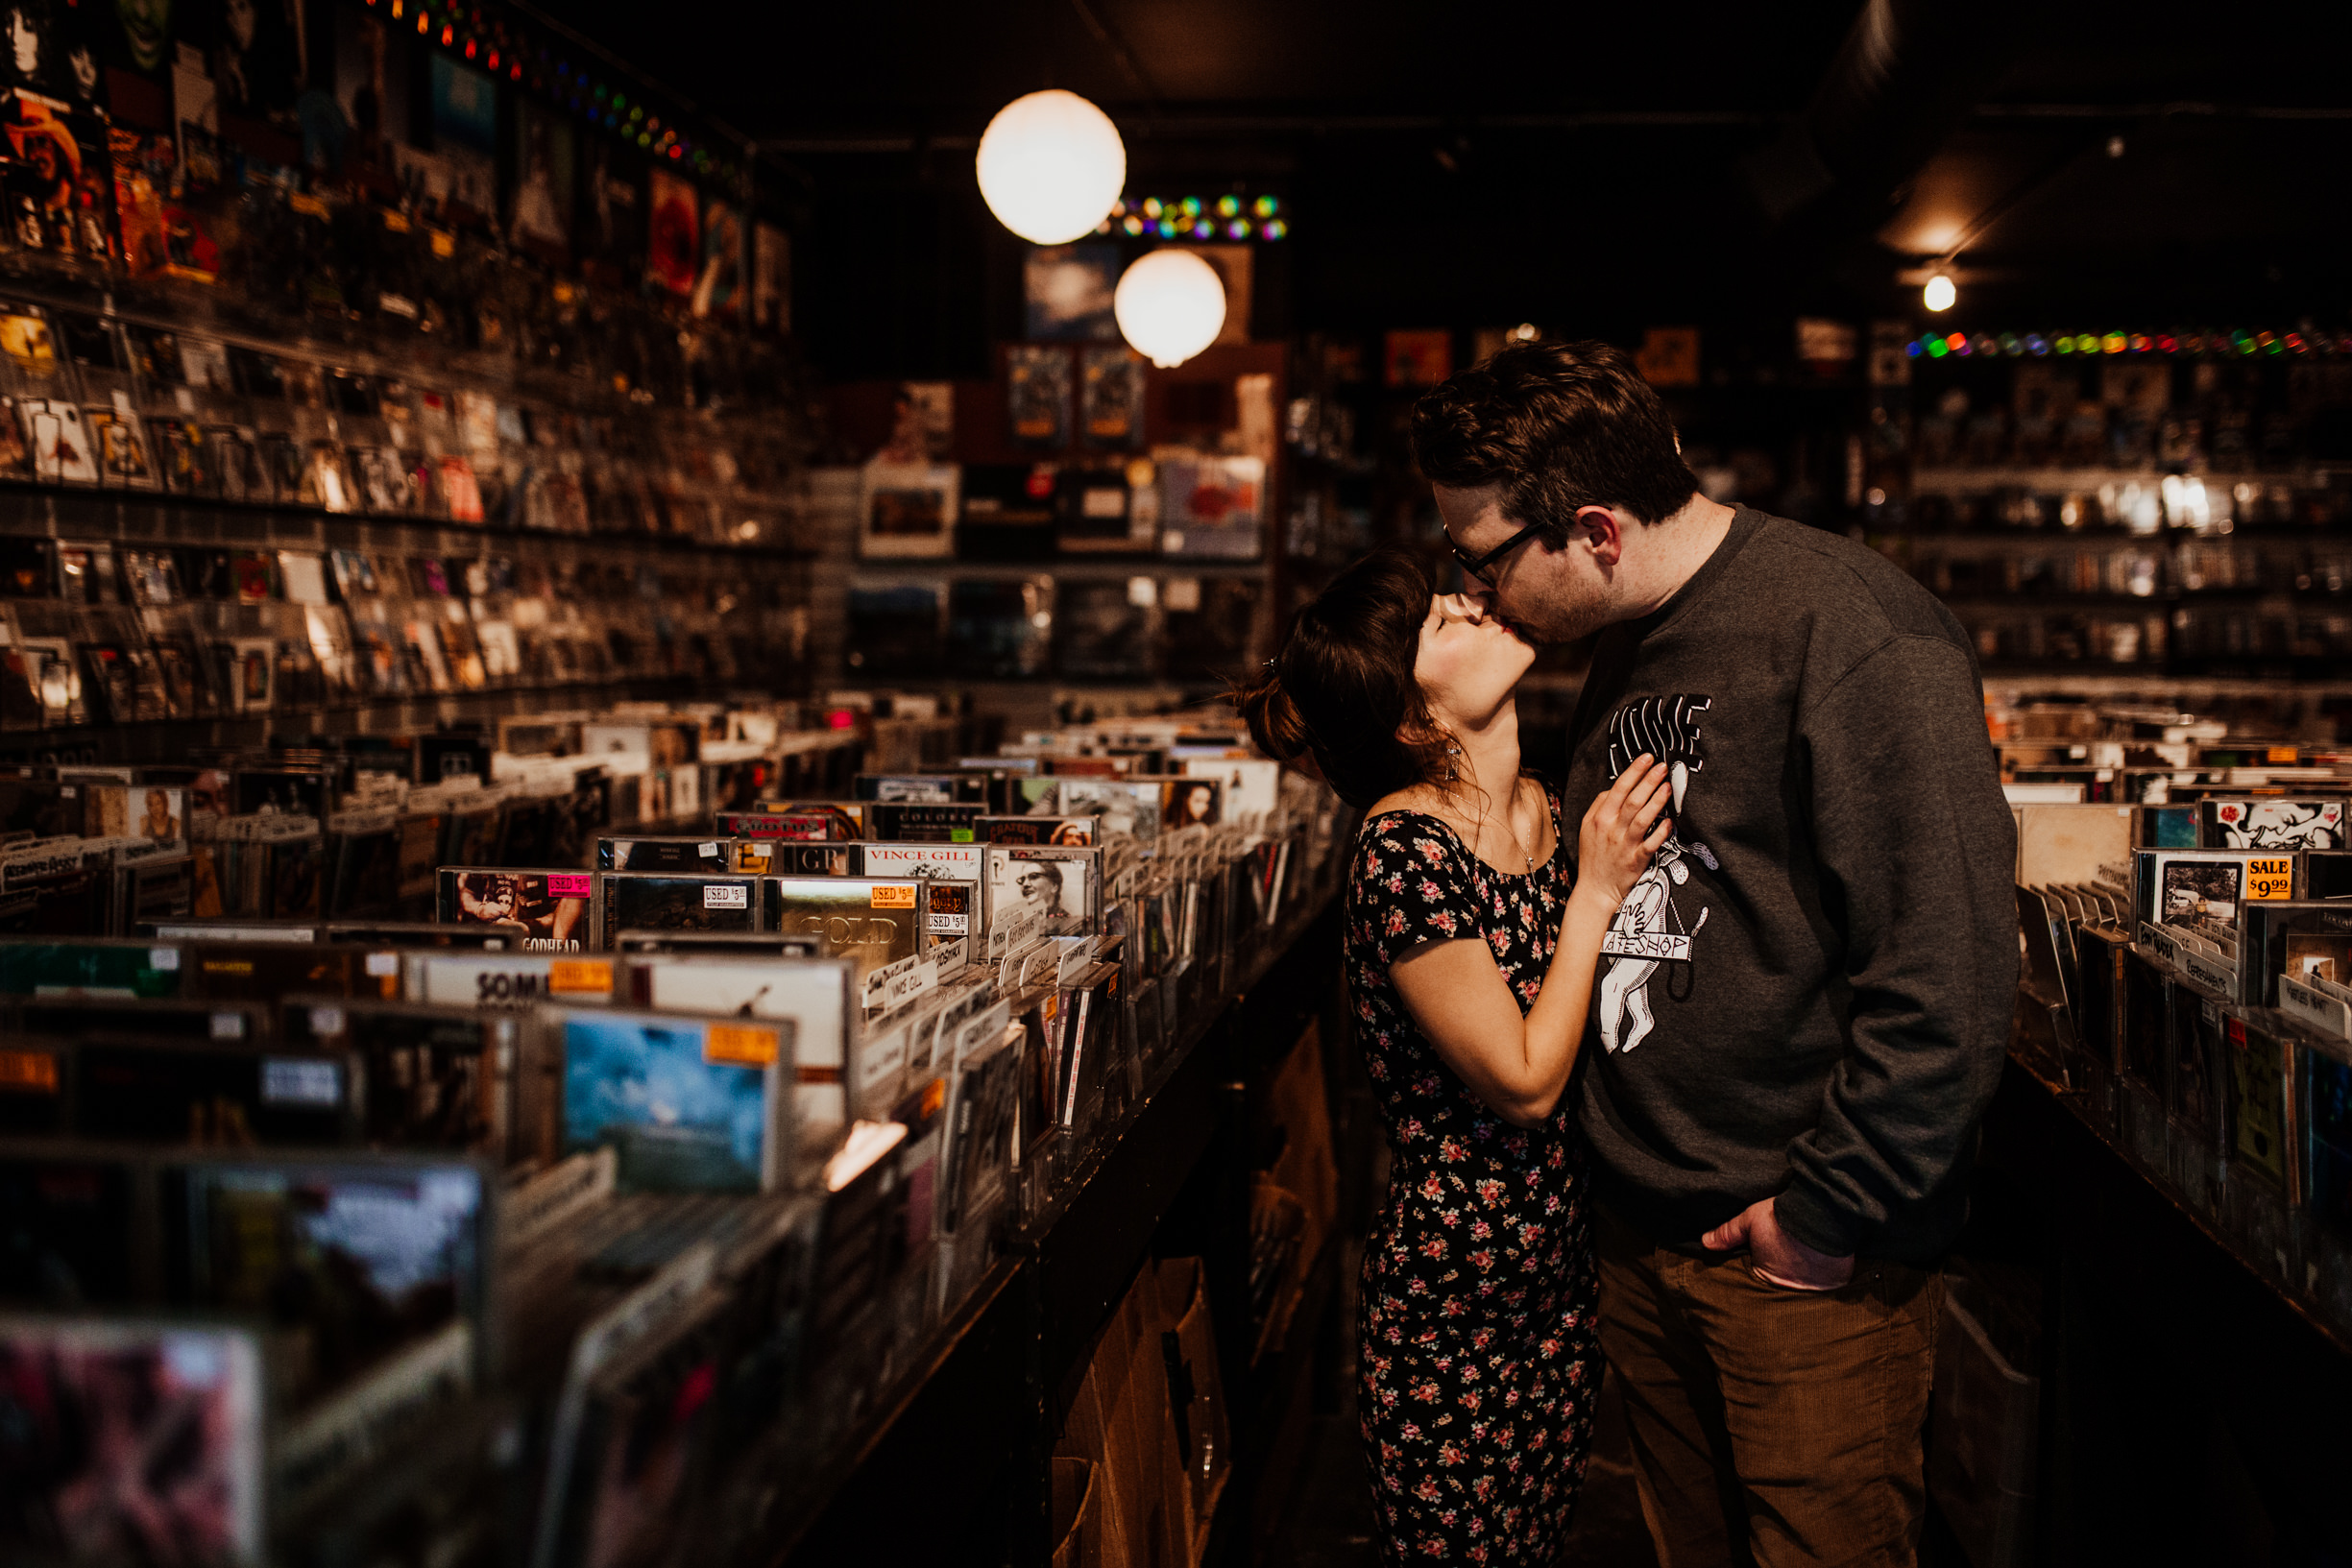 louisville-engagement-photographer-record-store-in-home-session-crystal-ludwick-photo (36 of 53).jpg